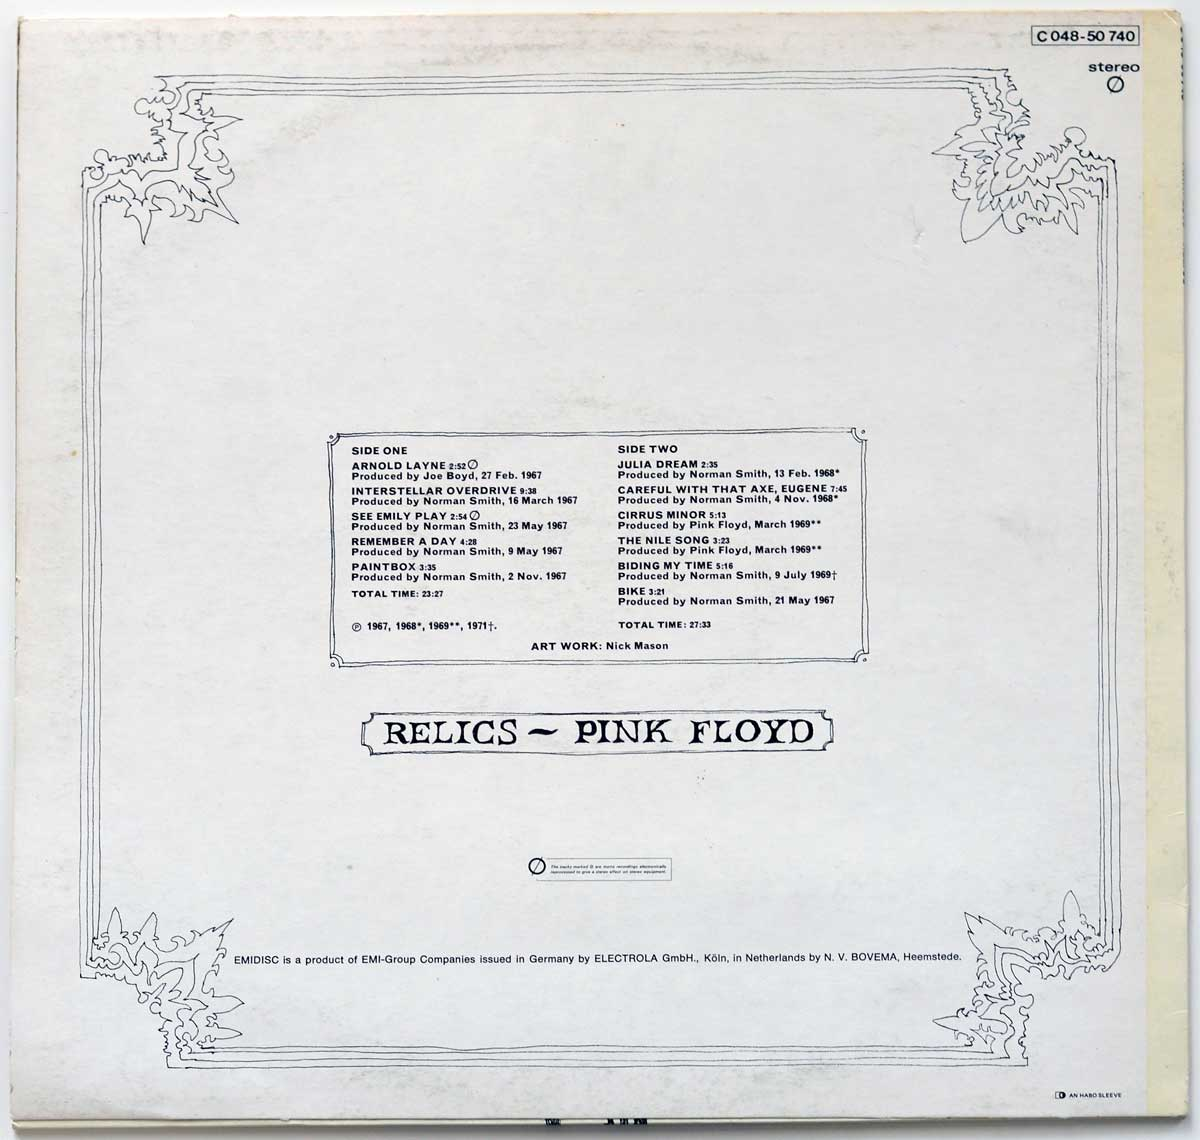 Photo of album back cover PINK FLOYD - Relics Netherlands